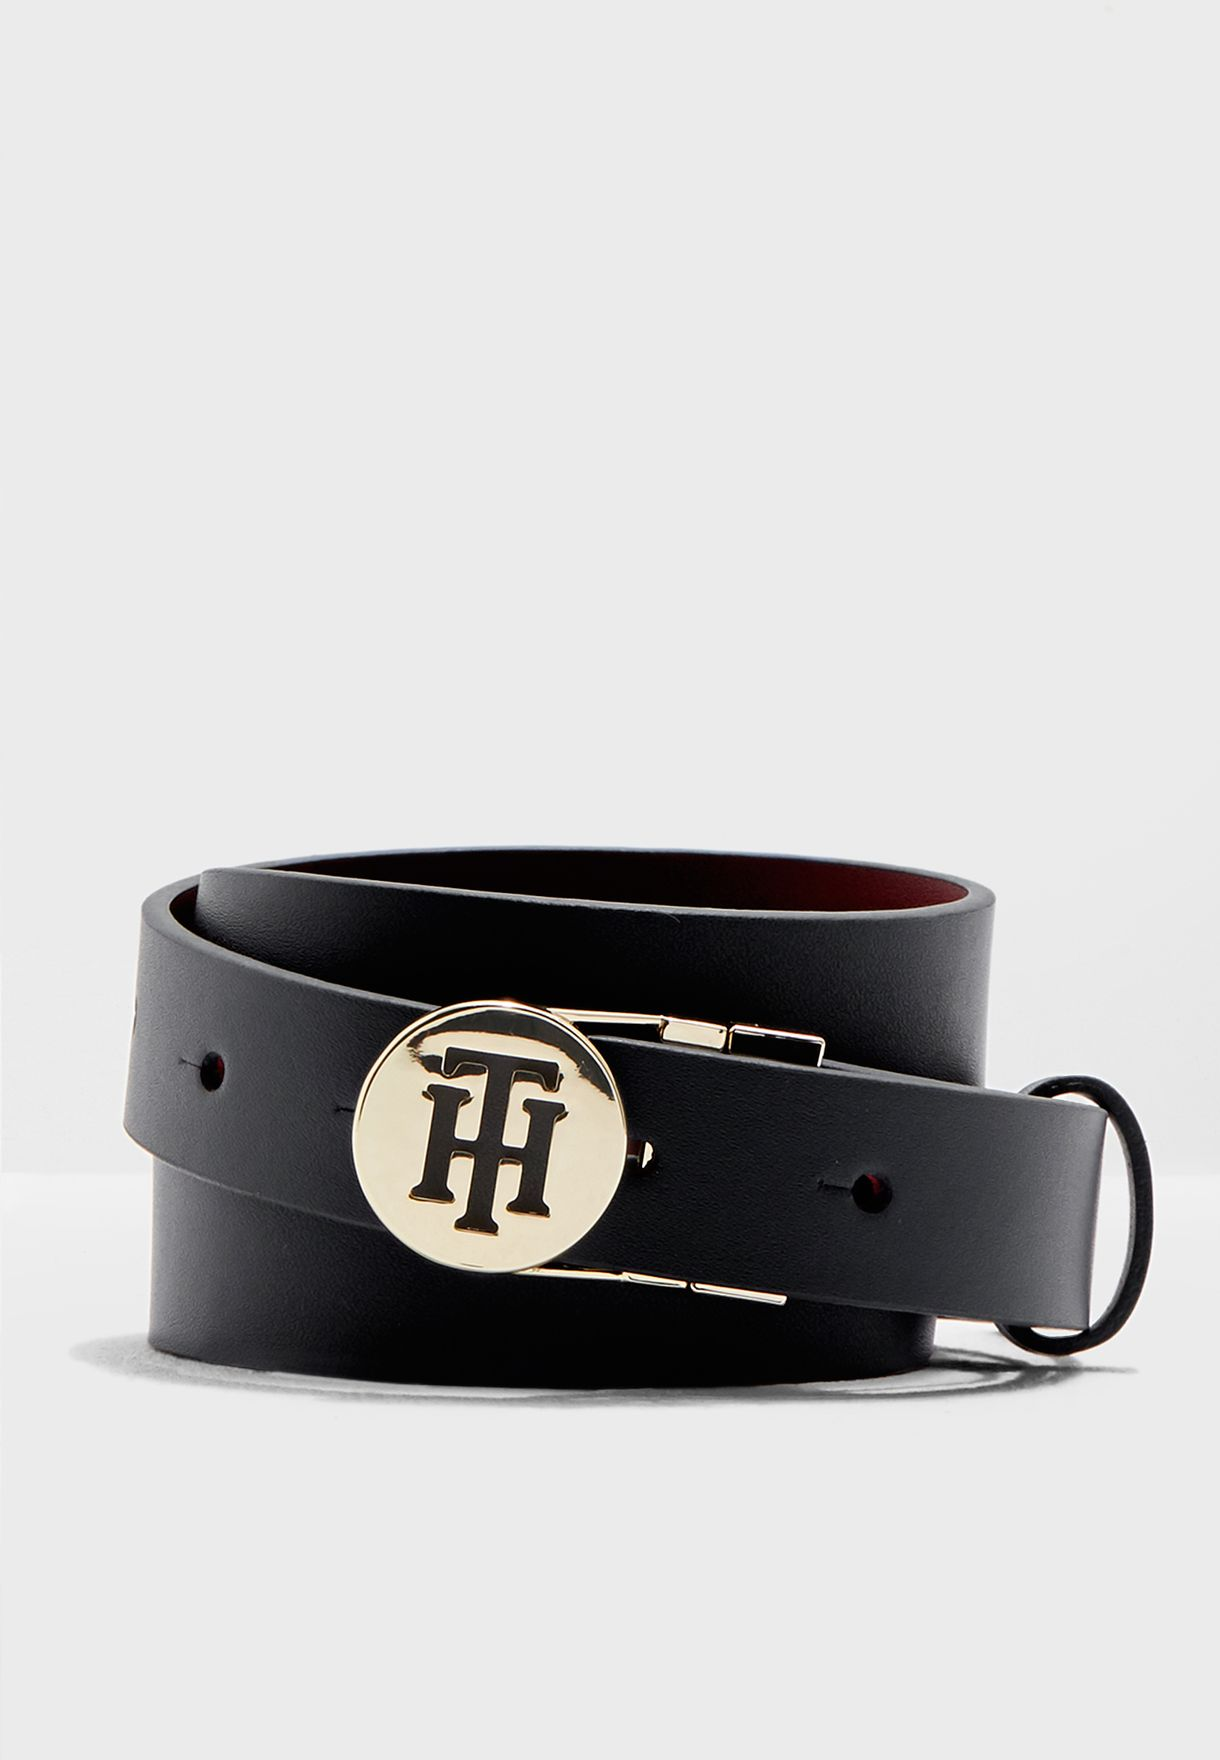 4a7f2649d897 Shop Tommy Hilfiger navy Round Buckle Reversible Belt AW0AW05879 for ...